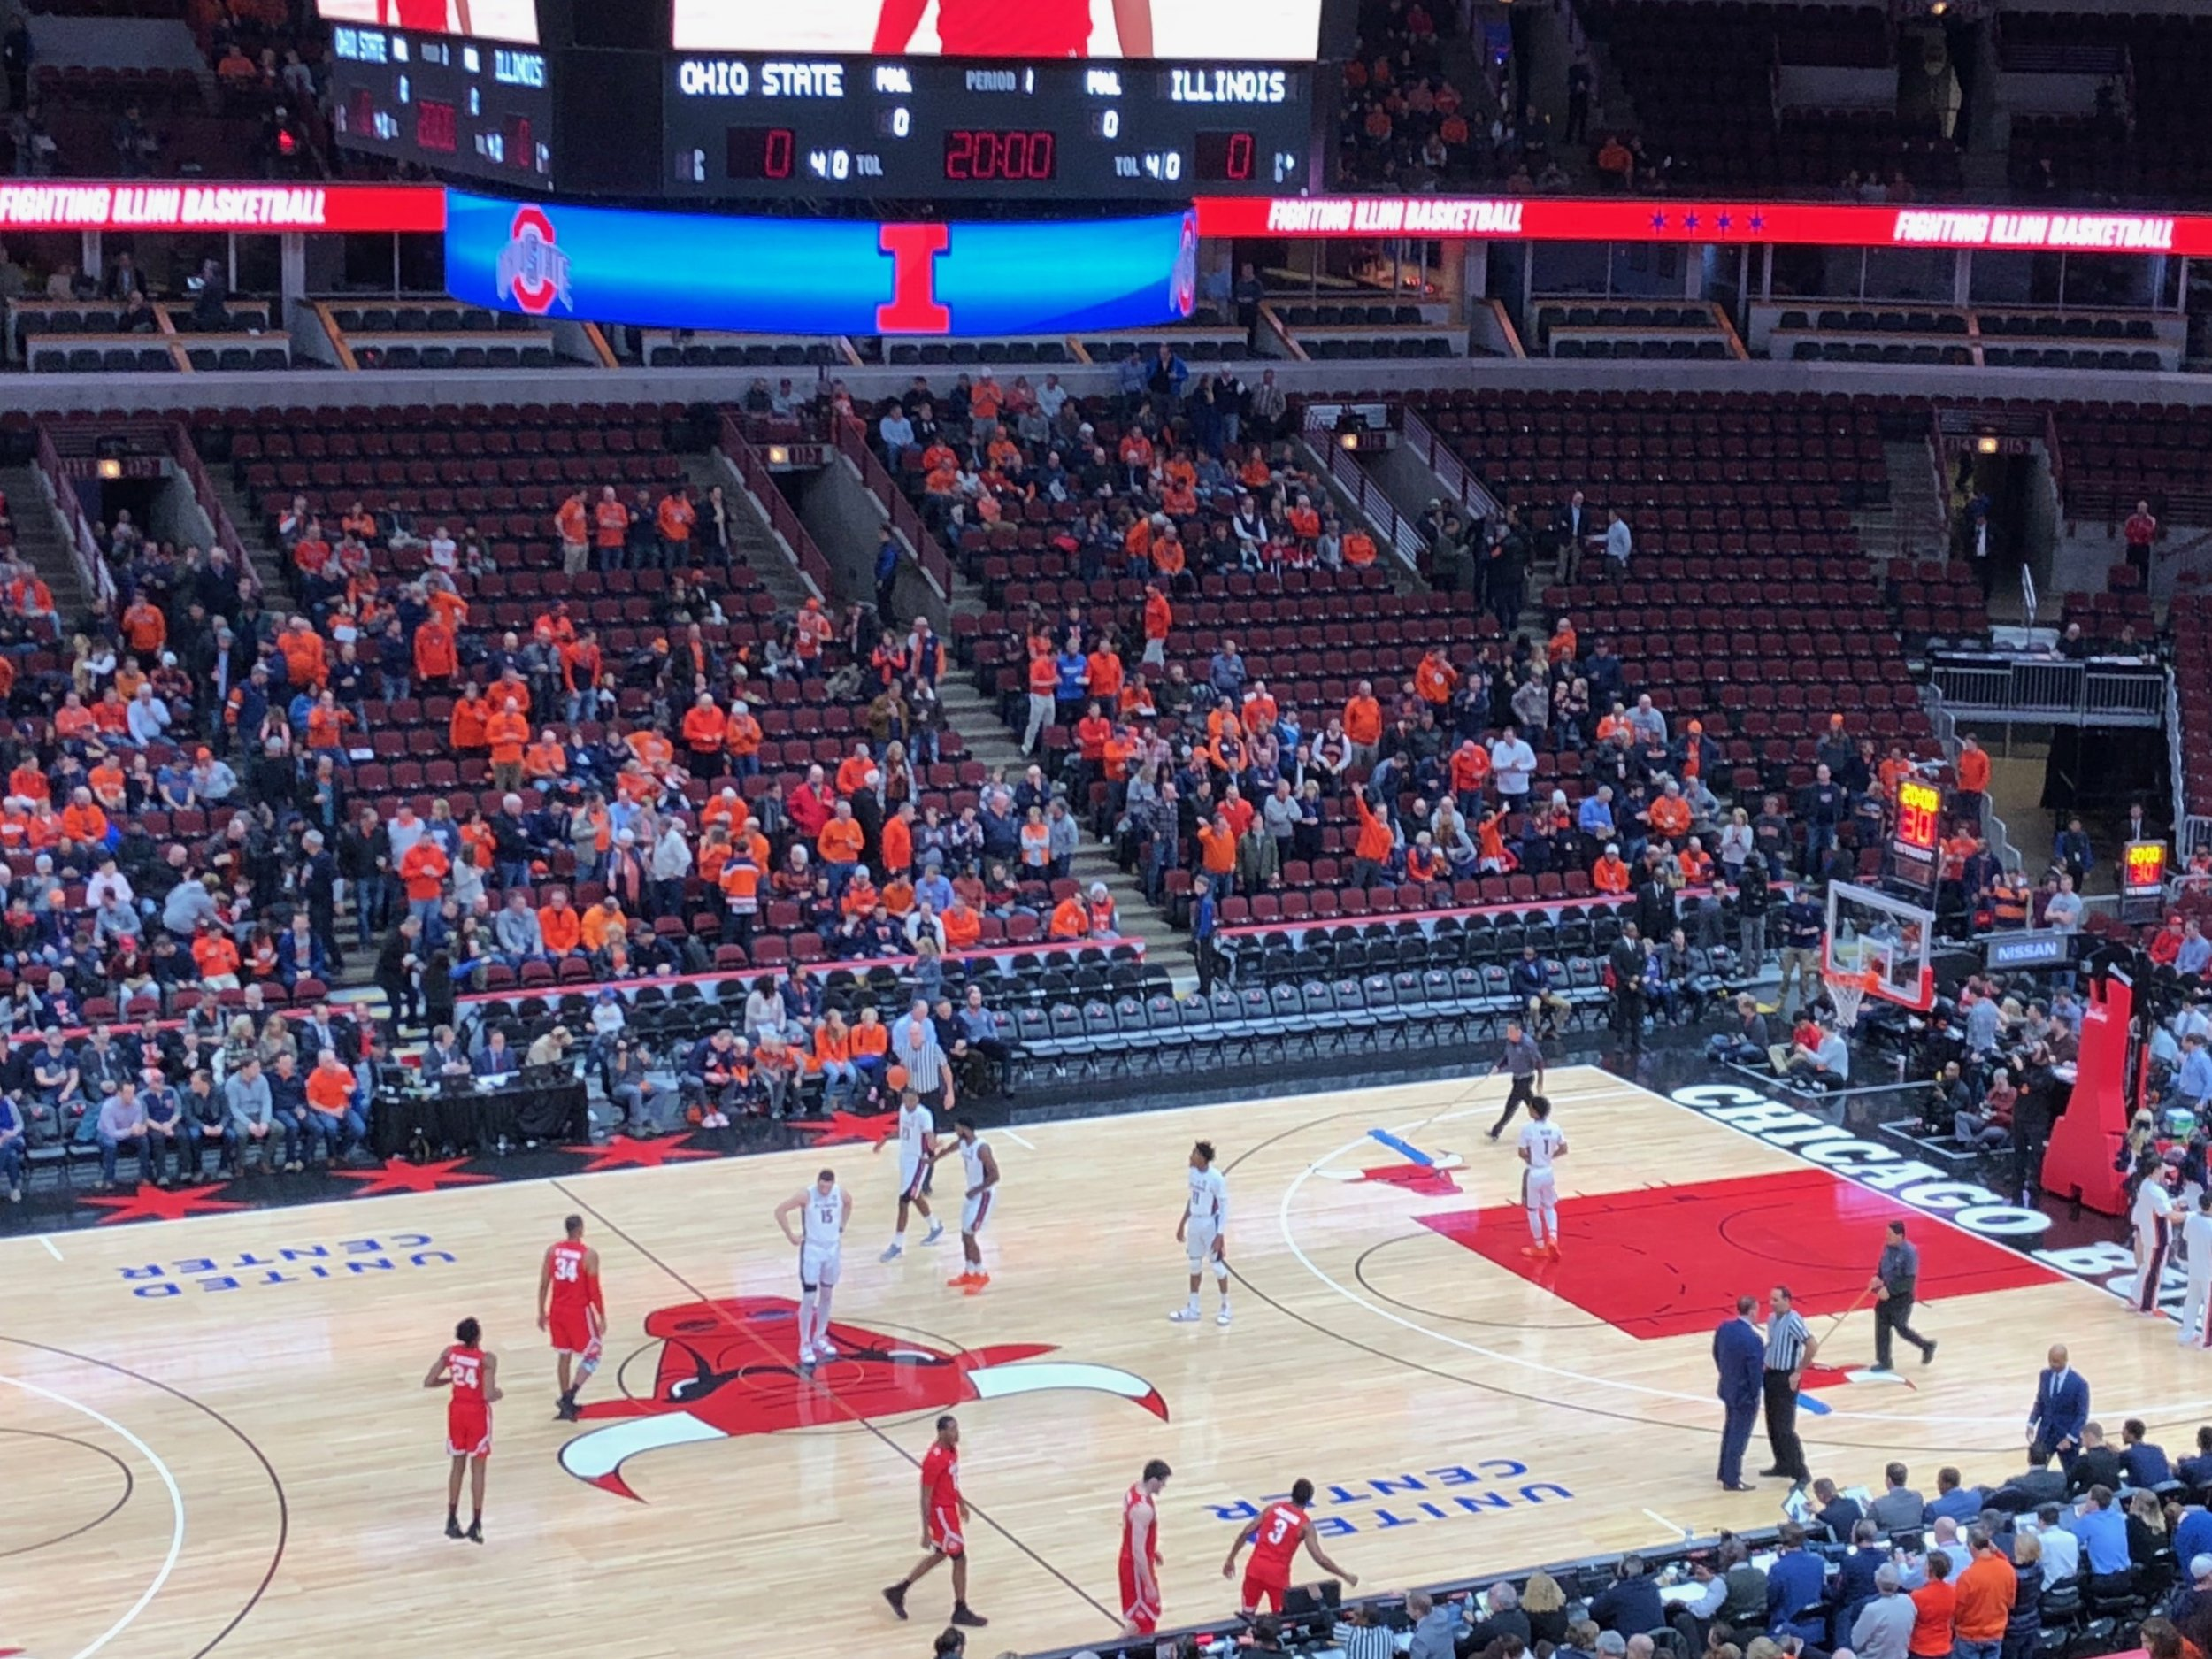 Illinois takes on Ohio State in a basketball game at the United Center in Chicago last year. (One Illinois/Ted Cox)